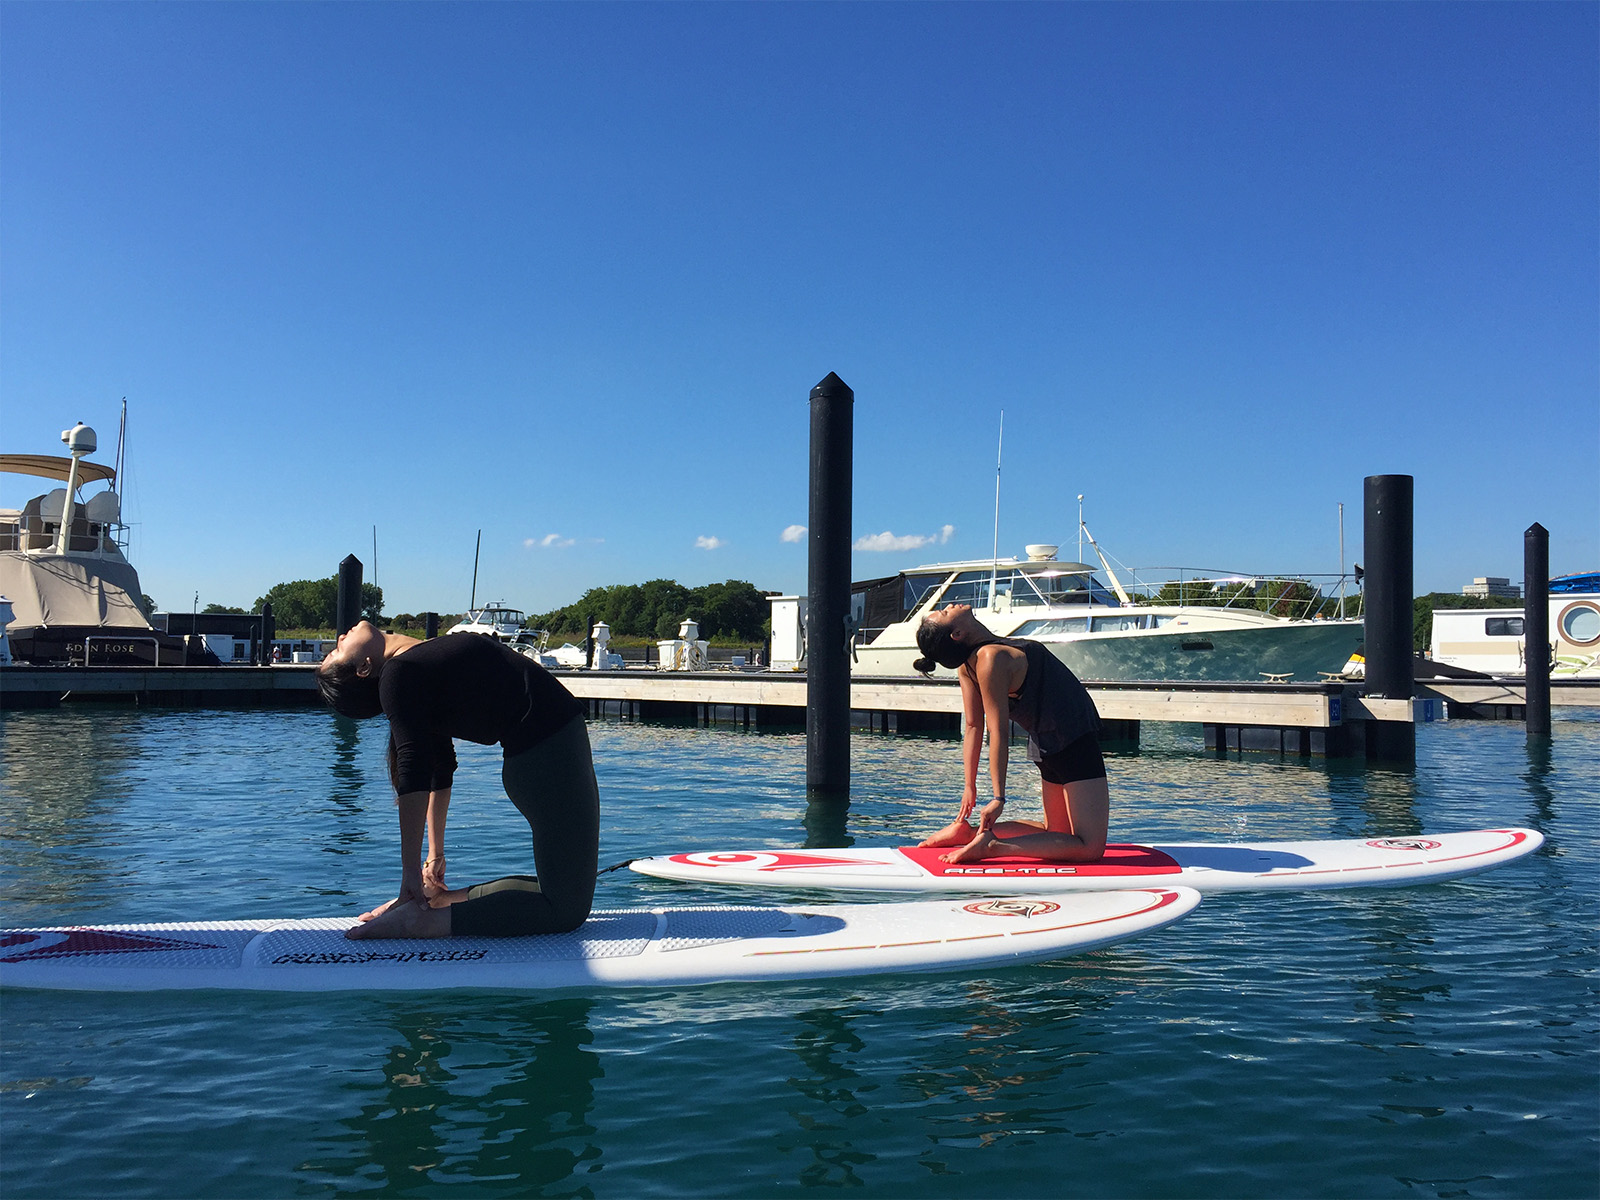 SUP Yoga at 31st St Harbor